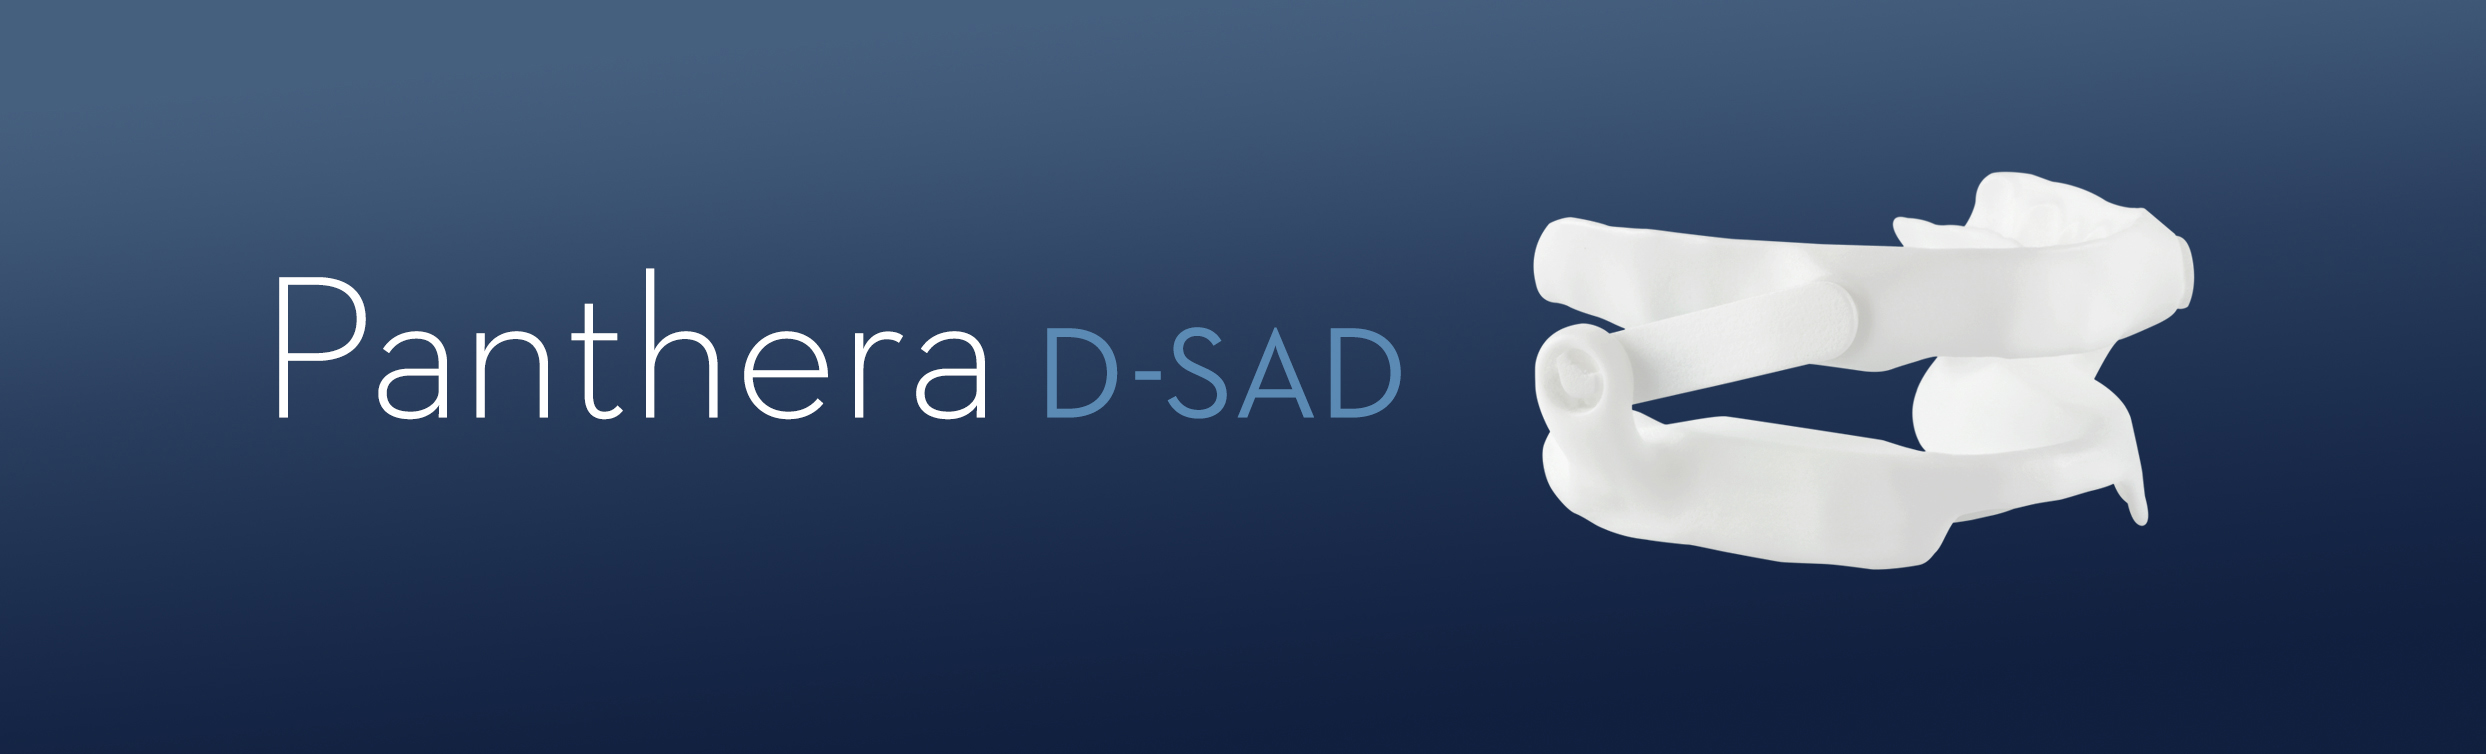 Panthera® D-SAD